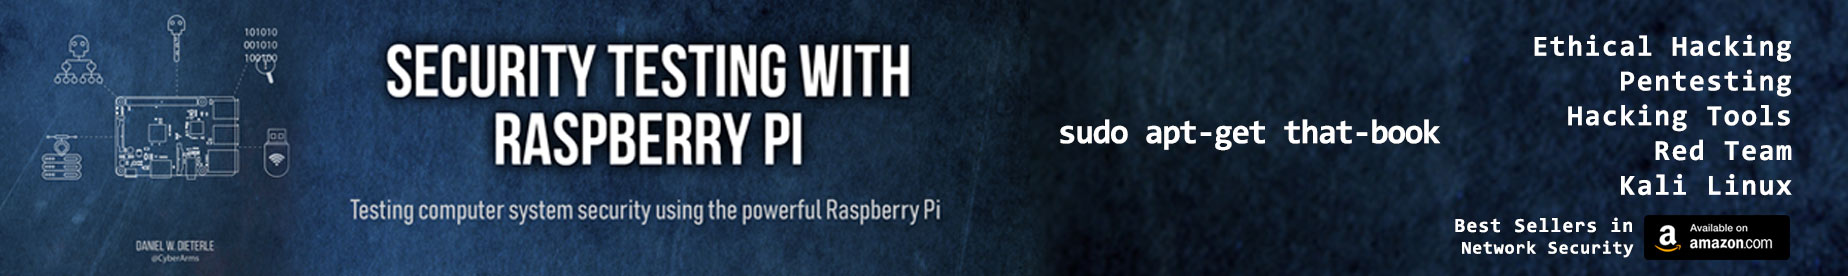 Security Testing with Raspberry Pi 2